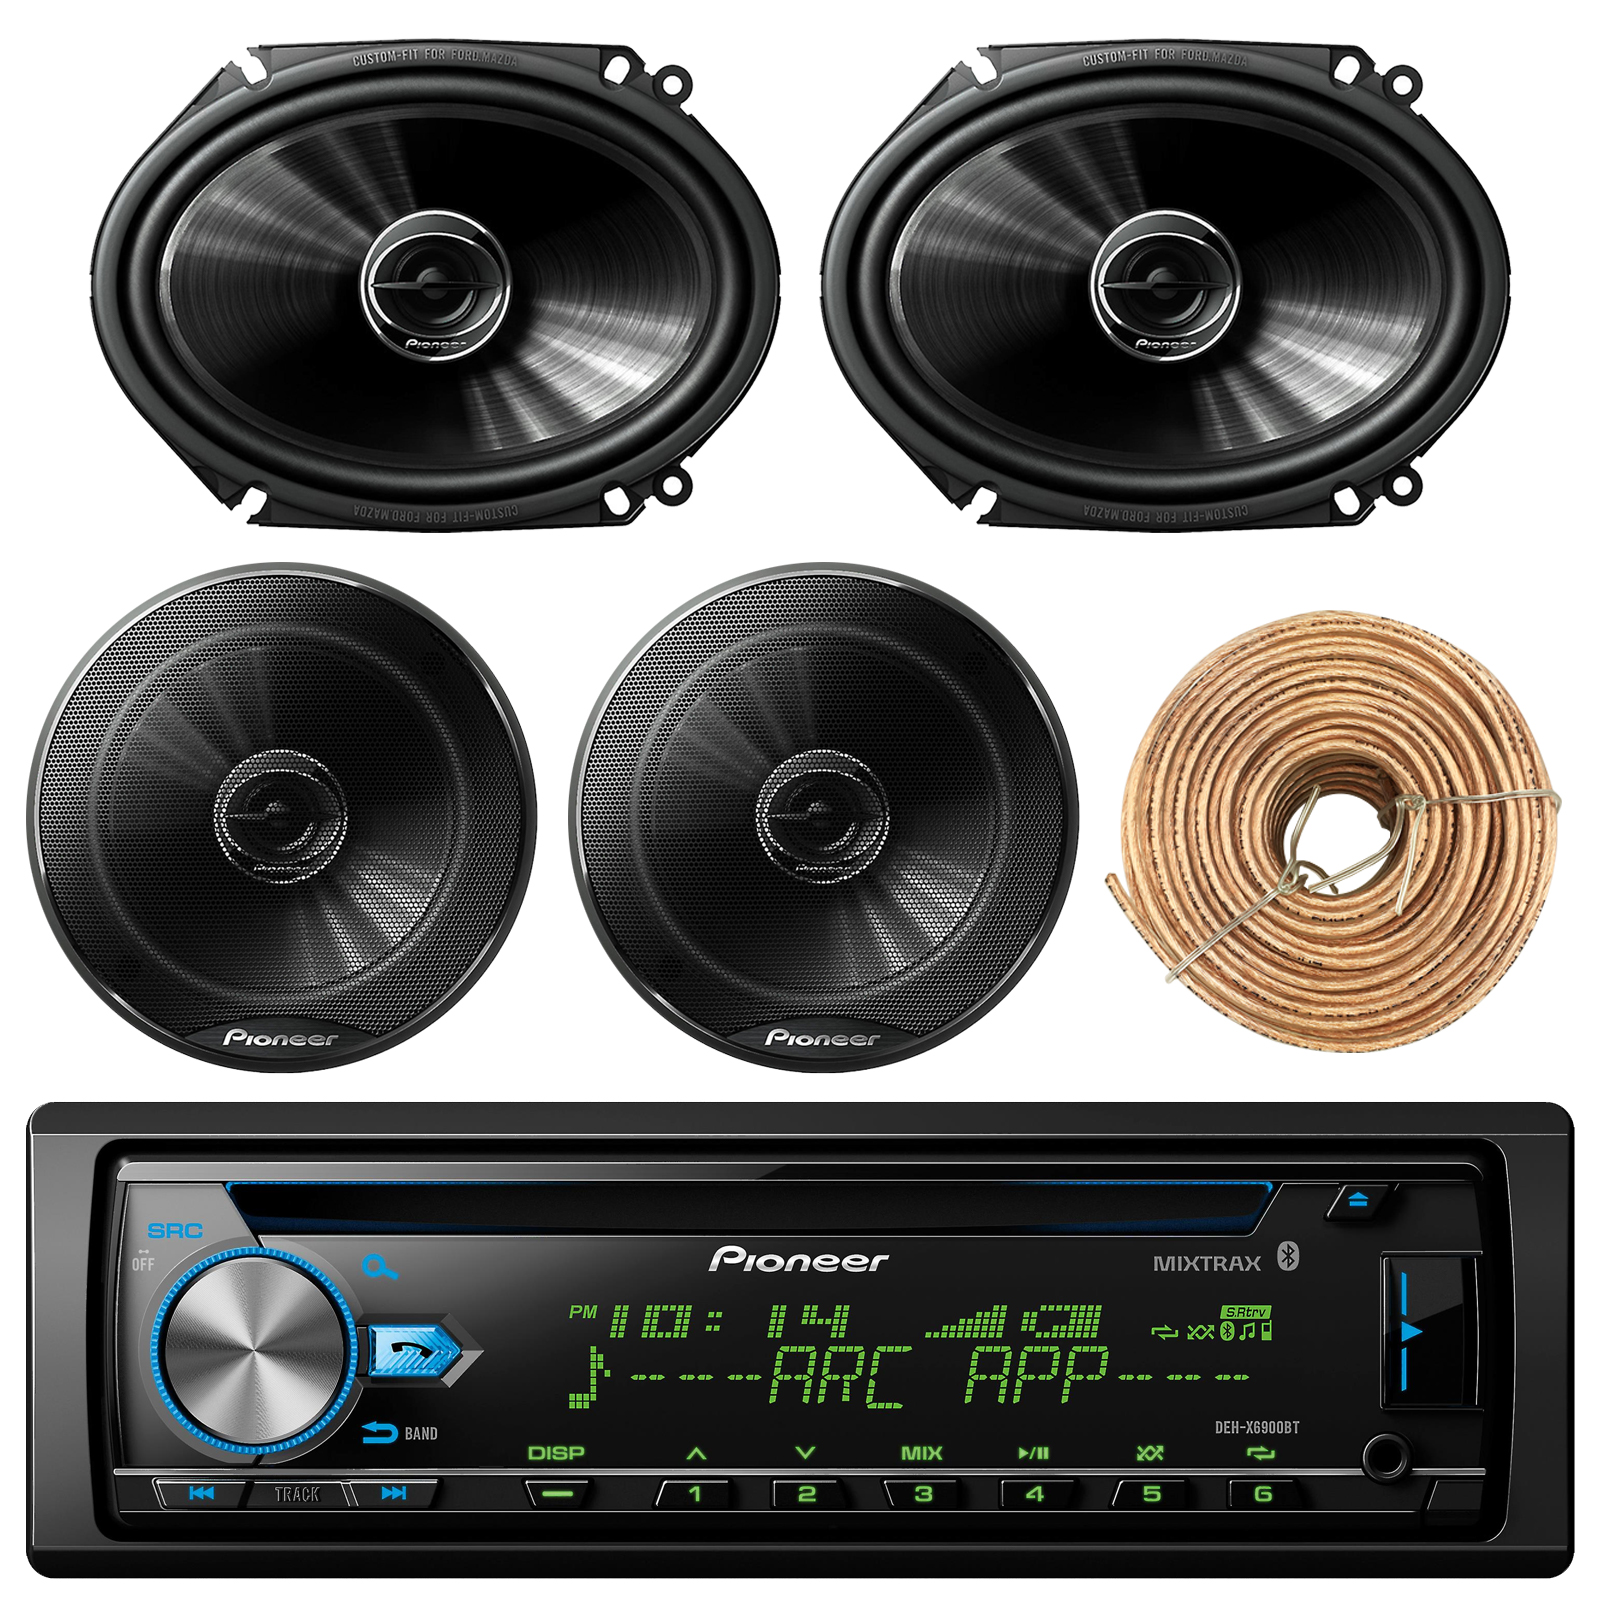 "Pioneer DEH-X6900BT Car Bluetooth Radio USB AUX CD Player Receiver - Bundle Combo With 2x 250W 6x8"" inch 2-Way Coaxial Car Audio Speakers + 2x 6.5-Inch Speakers + Enrock 50 Ft 18 Gauge Speaker Wire"